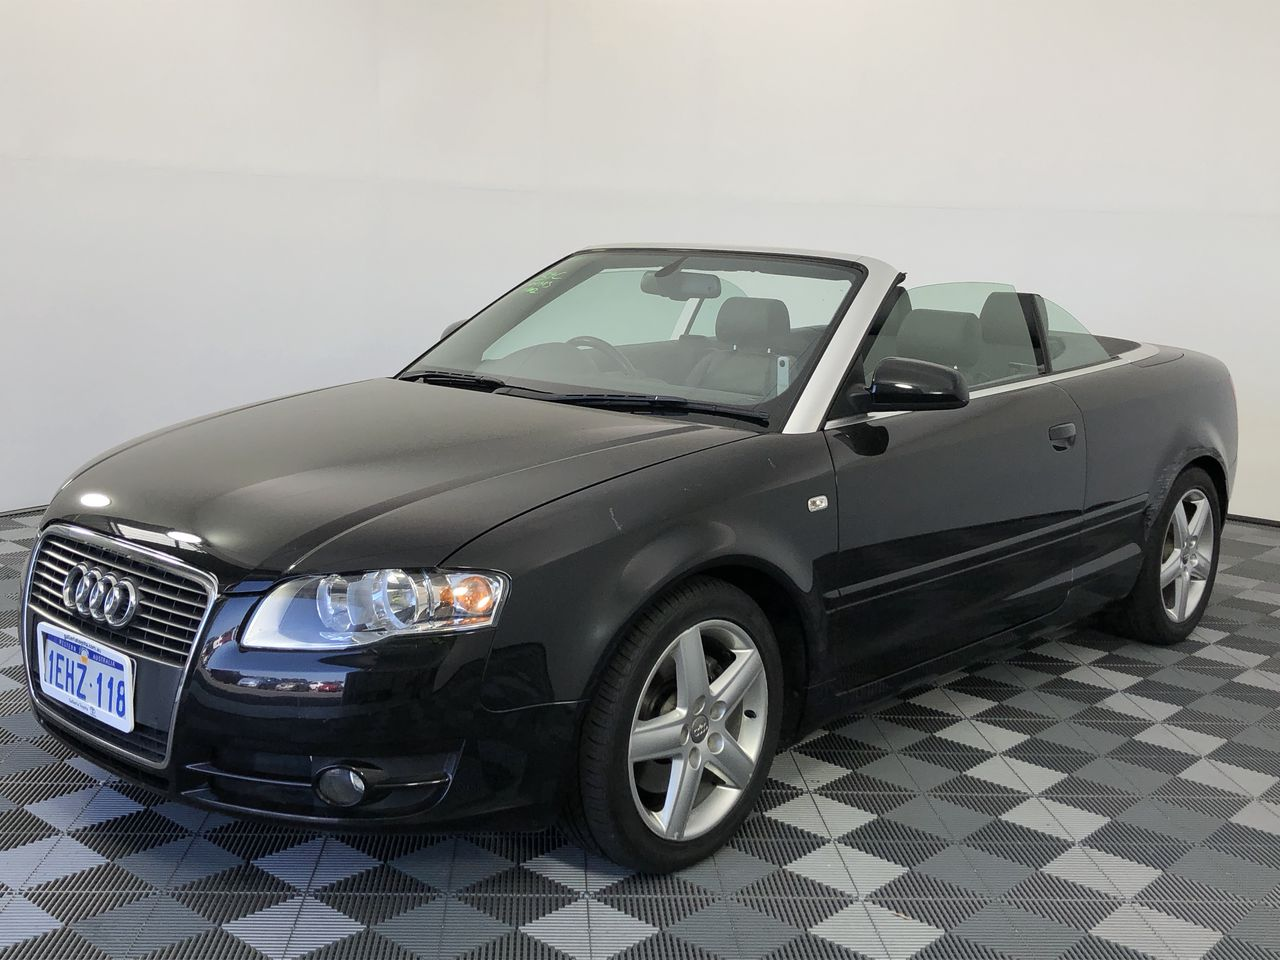 2007 Audi A4 Cabriolet B6 Automatic Convertible